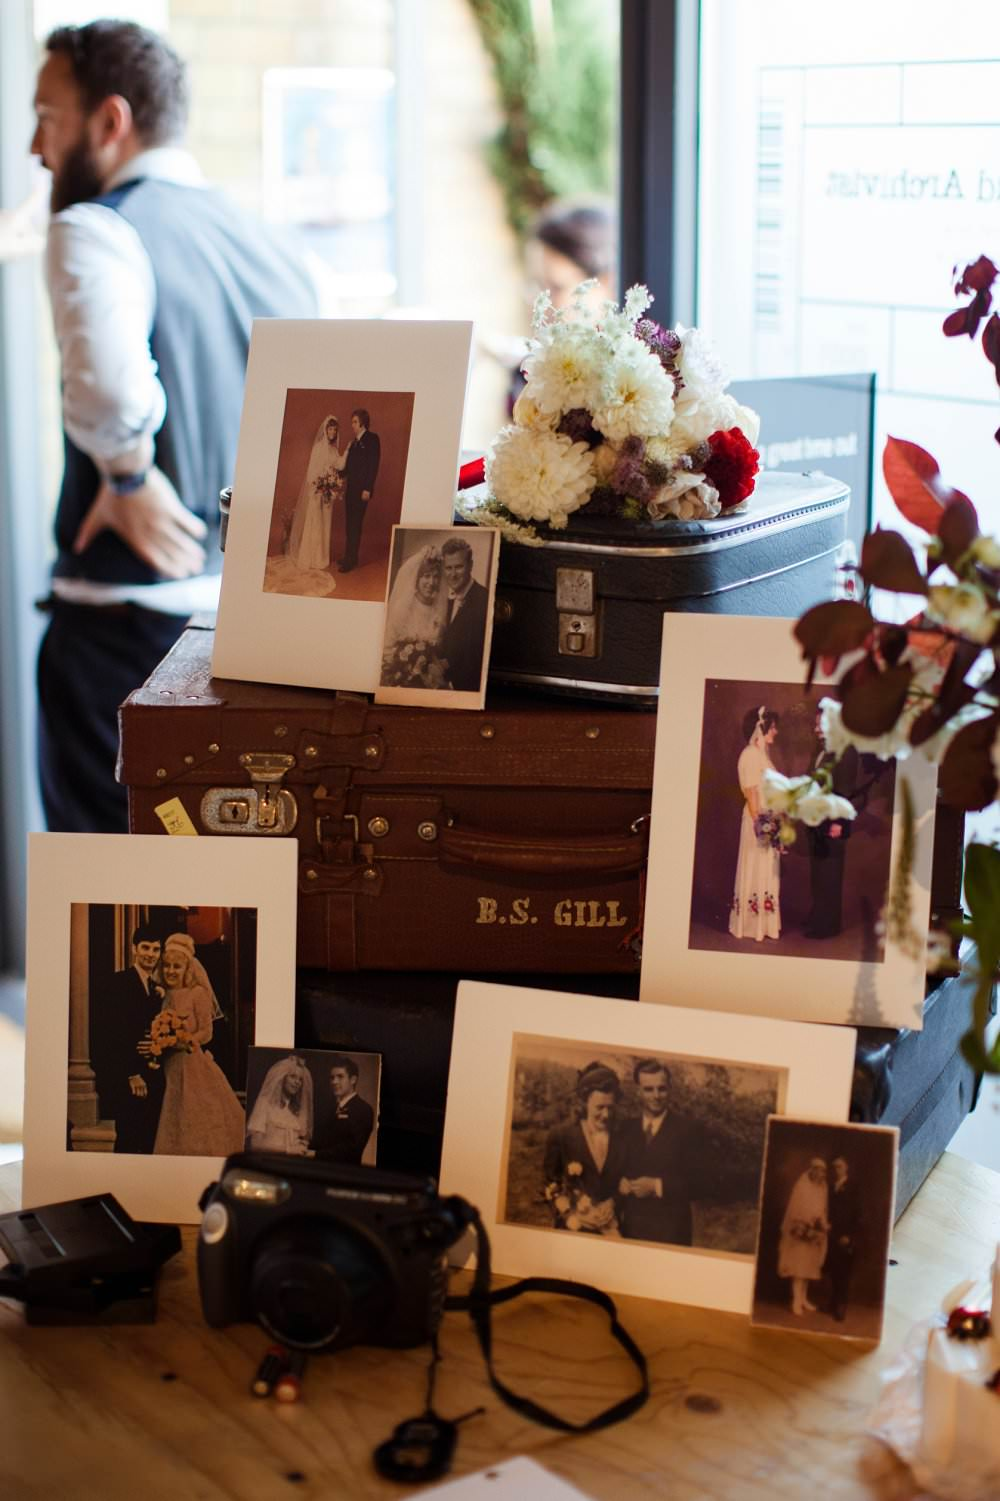 FAmily wedding photos on Vintage suitcases | London Wedding The Curries Photogrpahy | Always Andri Wedding Planning